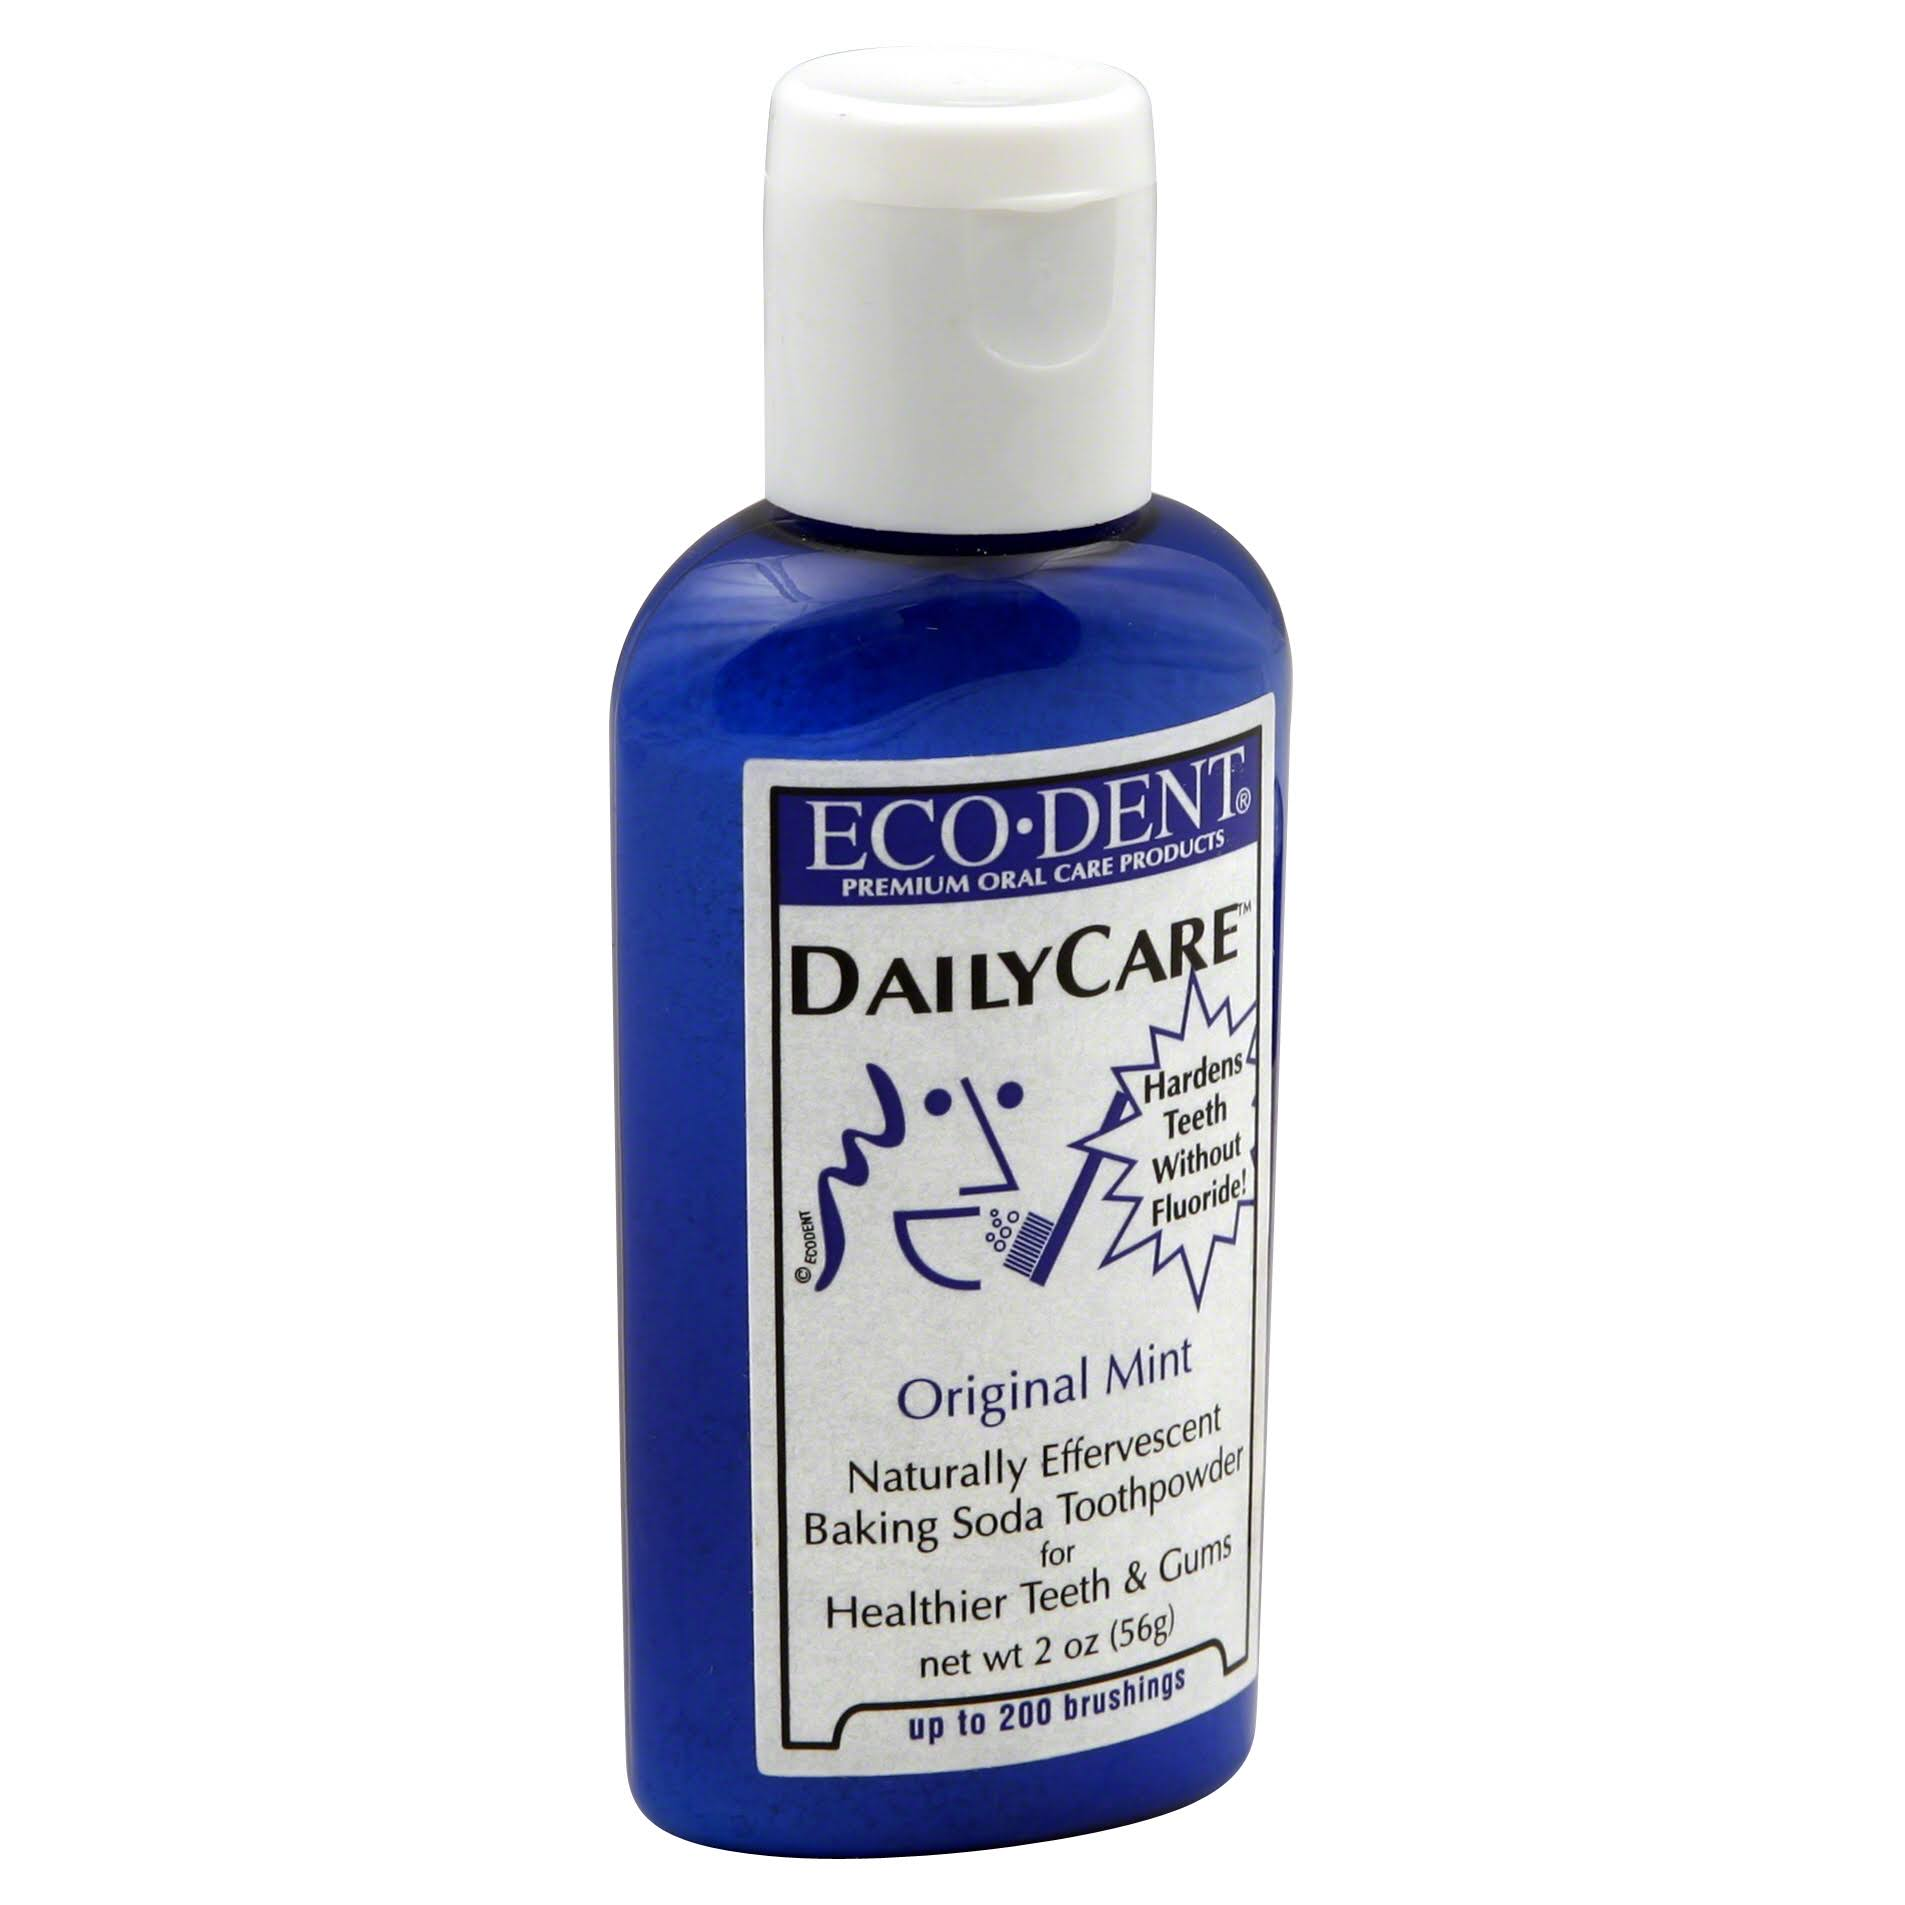 Eco-Dent Dailycare Toothpowder - Mint, 56g